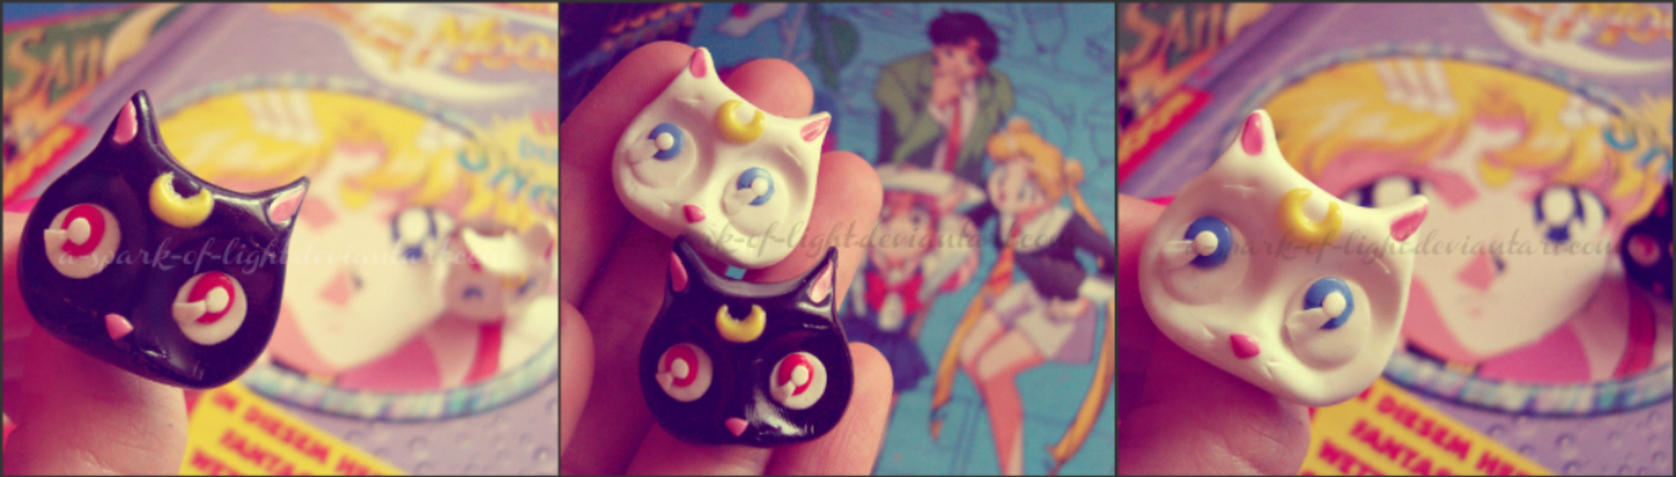 200th deviation Sailor Moon Luna and Artemis rings by A-Spark-Of-Light